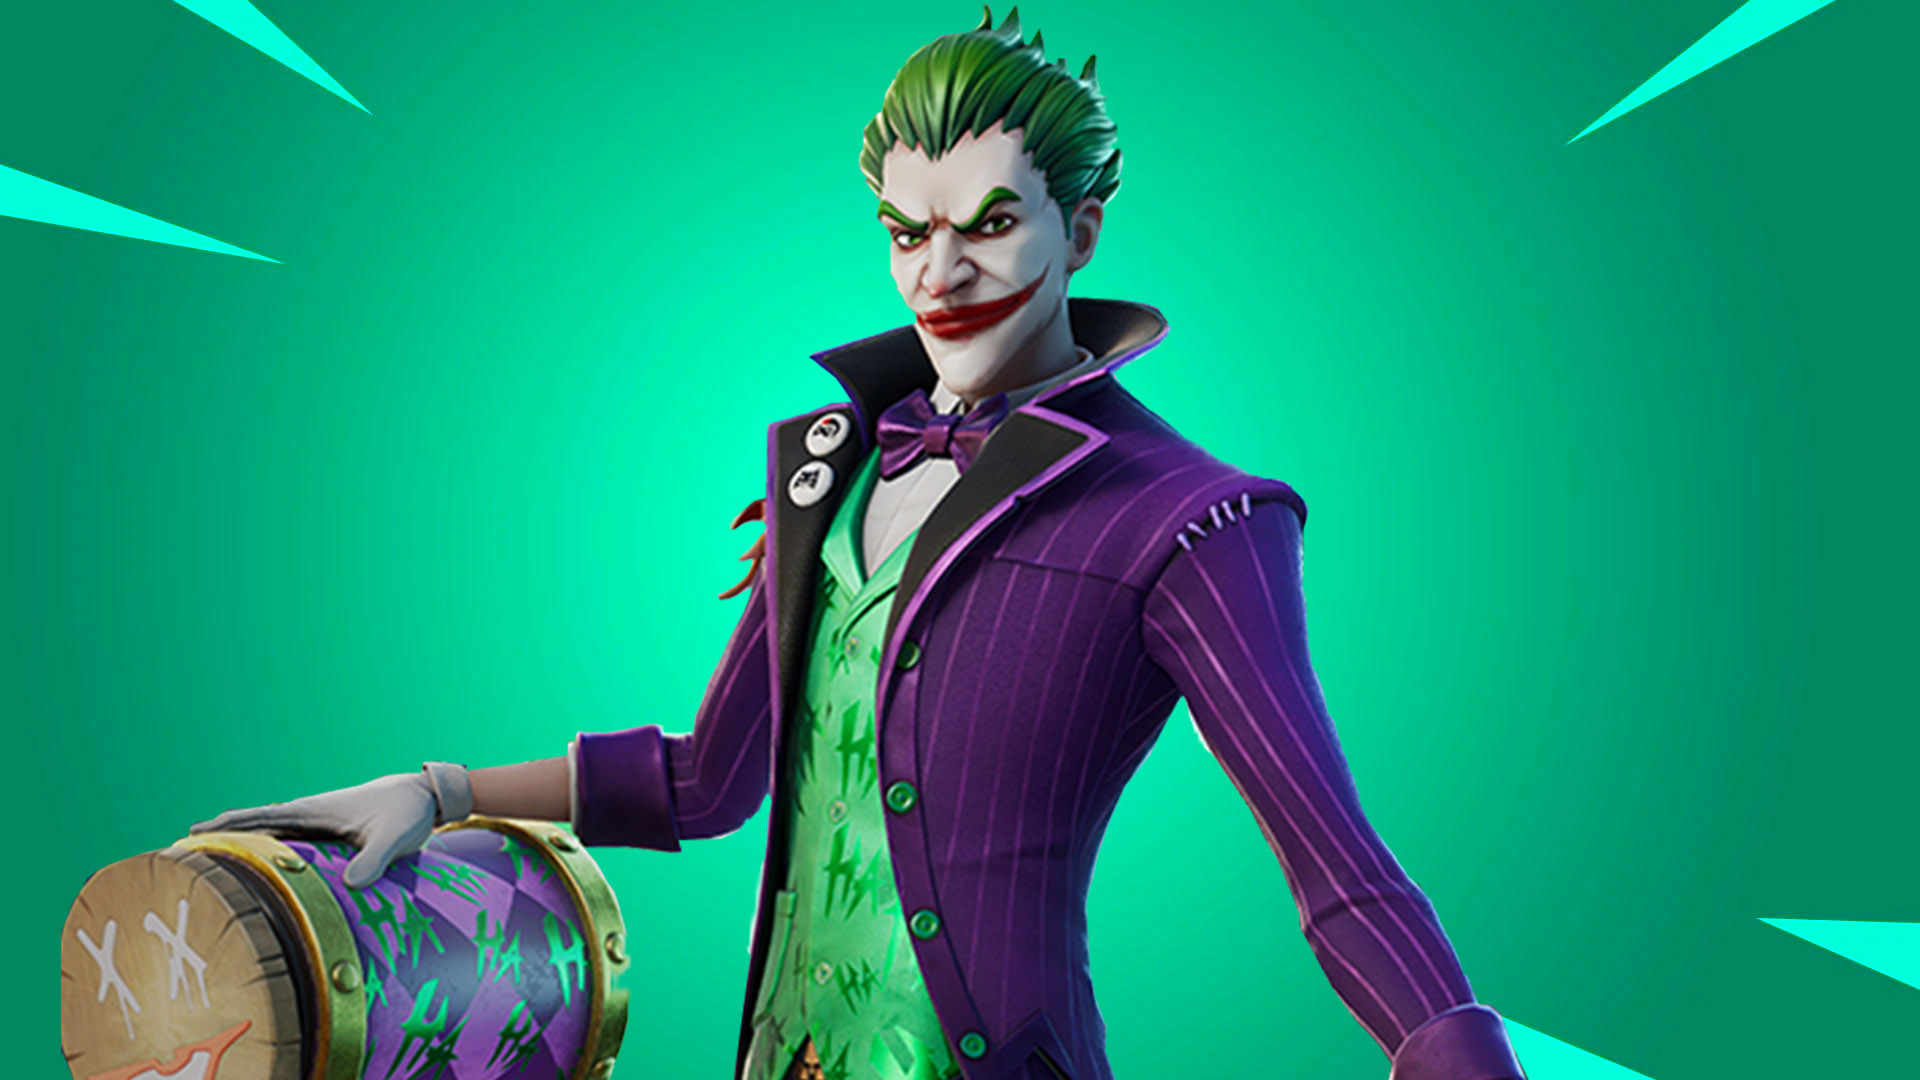 The Joker Fortnite Wallpapers Wallpaper Cave The joker is a dc series outfit in battle royale that can be obtained by purchasing the last laugh bundle. the joker fortnite wallpapers